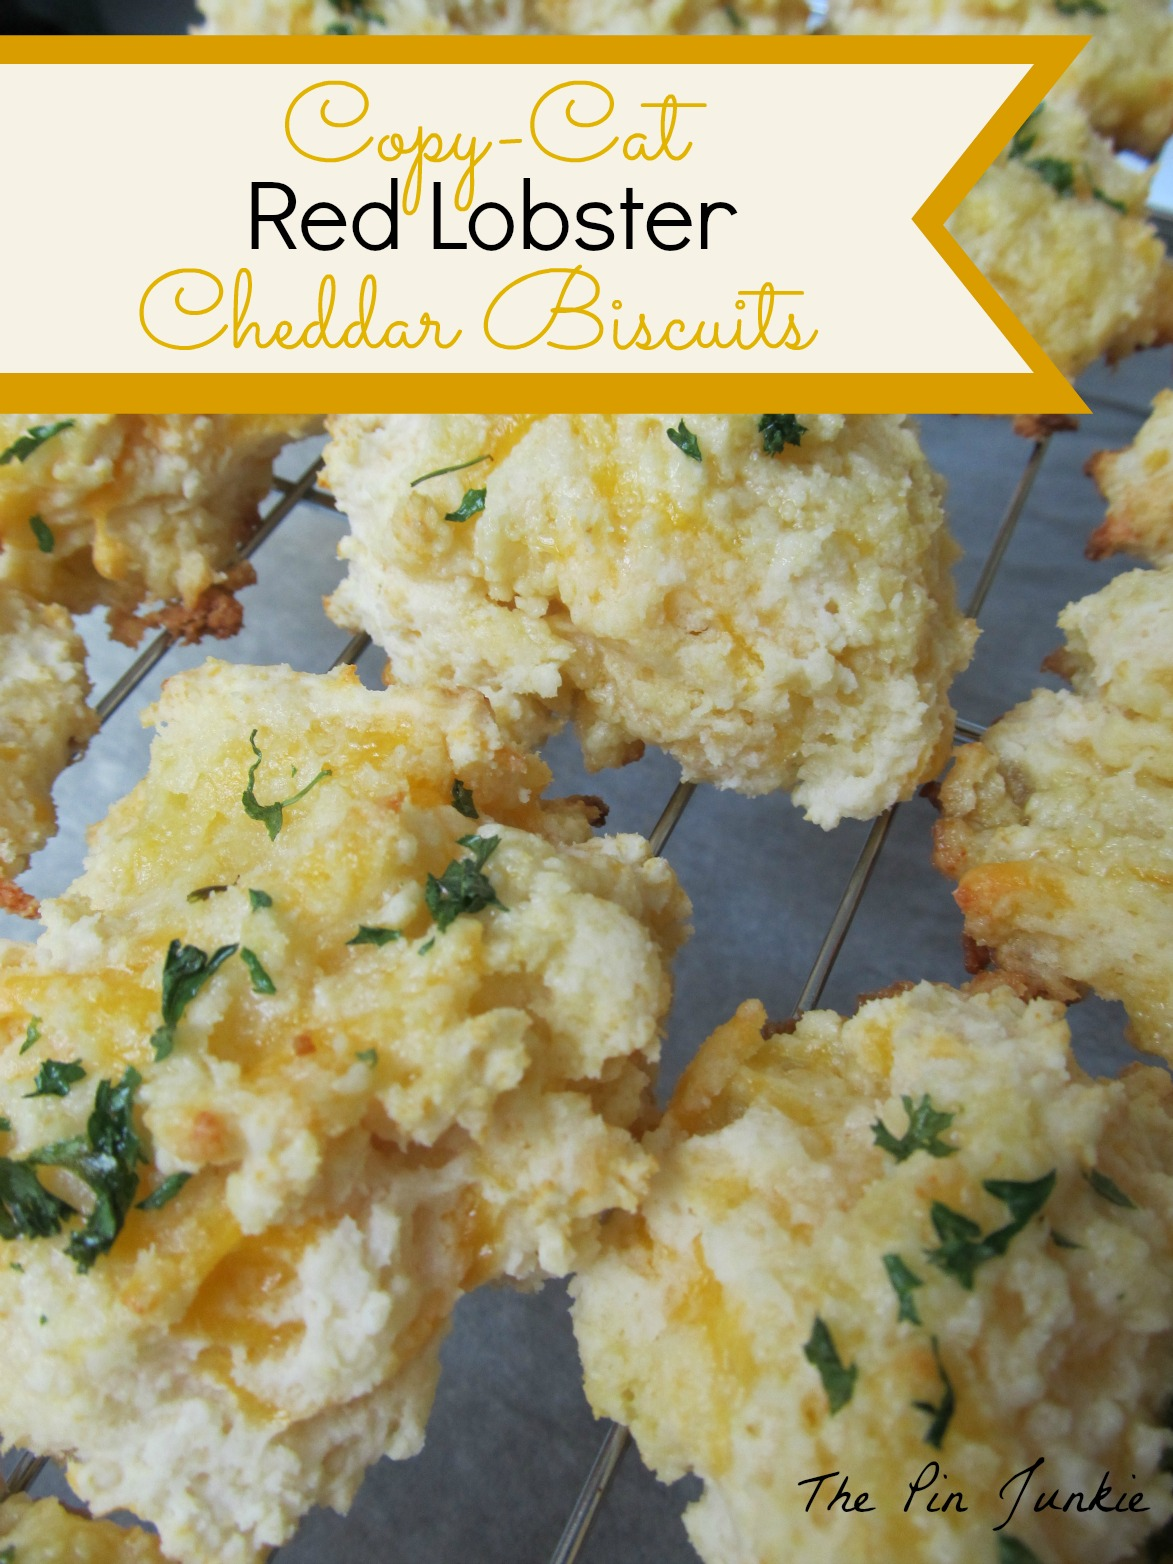 http://www.thepinjunkie.com/2013/05/red-lobster-cheddar-biscuits.html